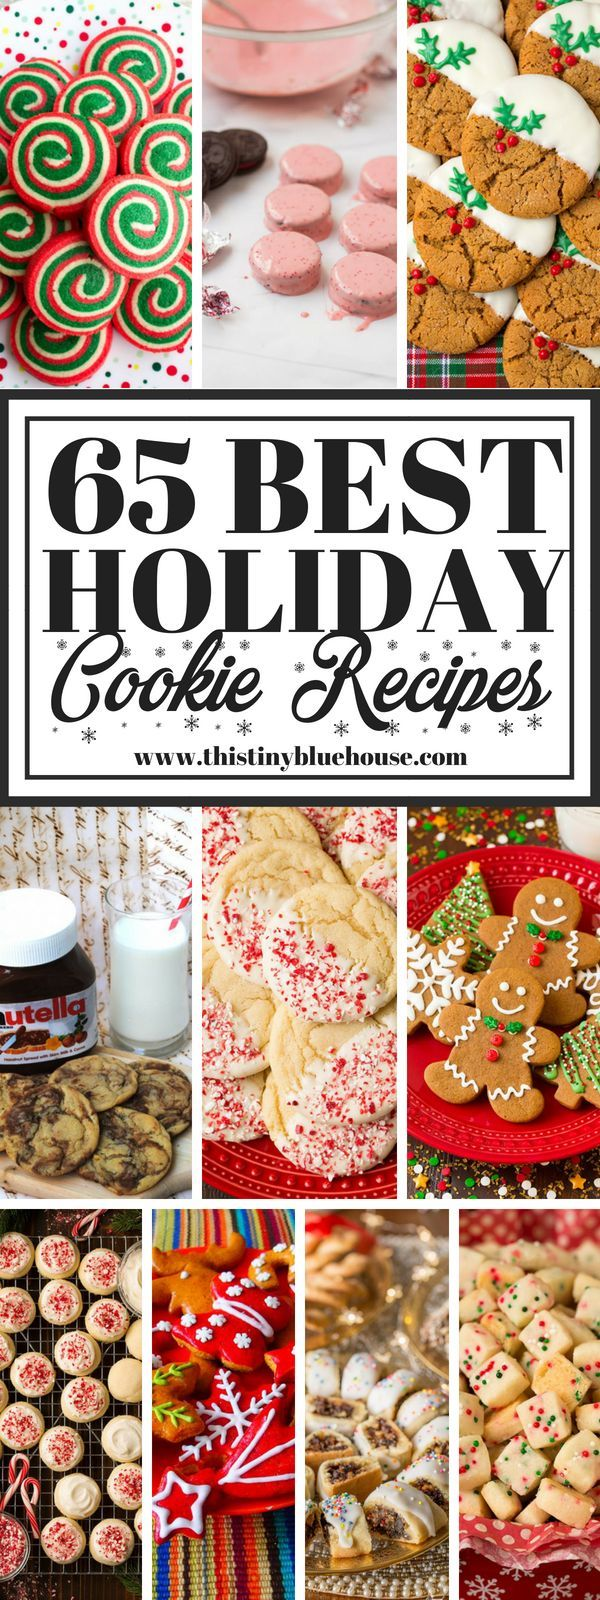 65 Best Holiday Cookie Recipes